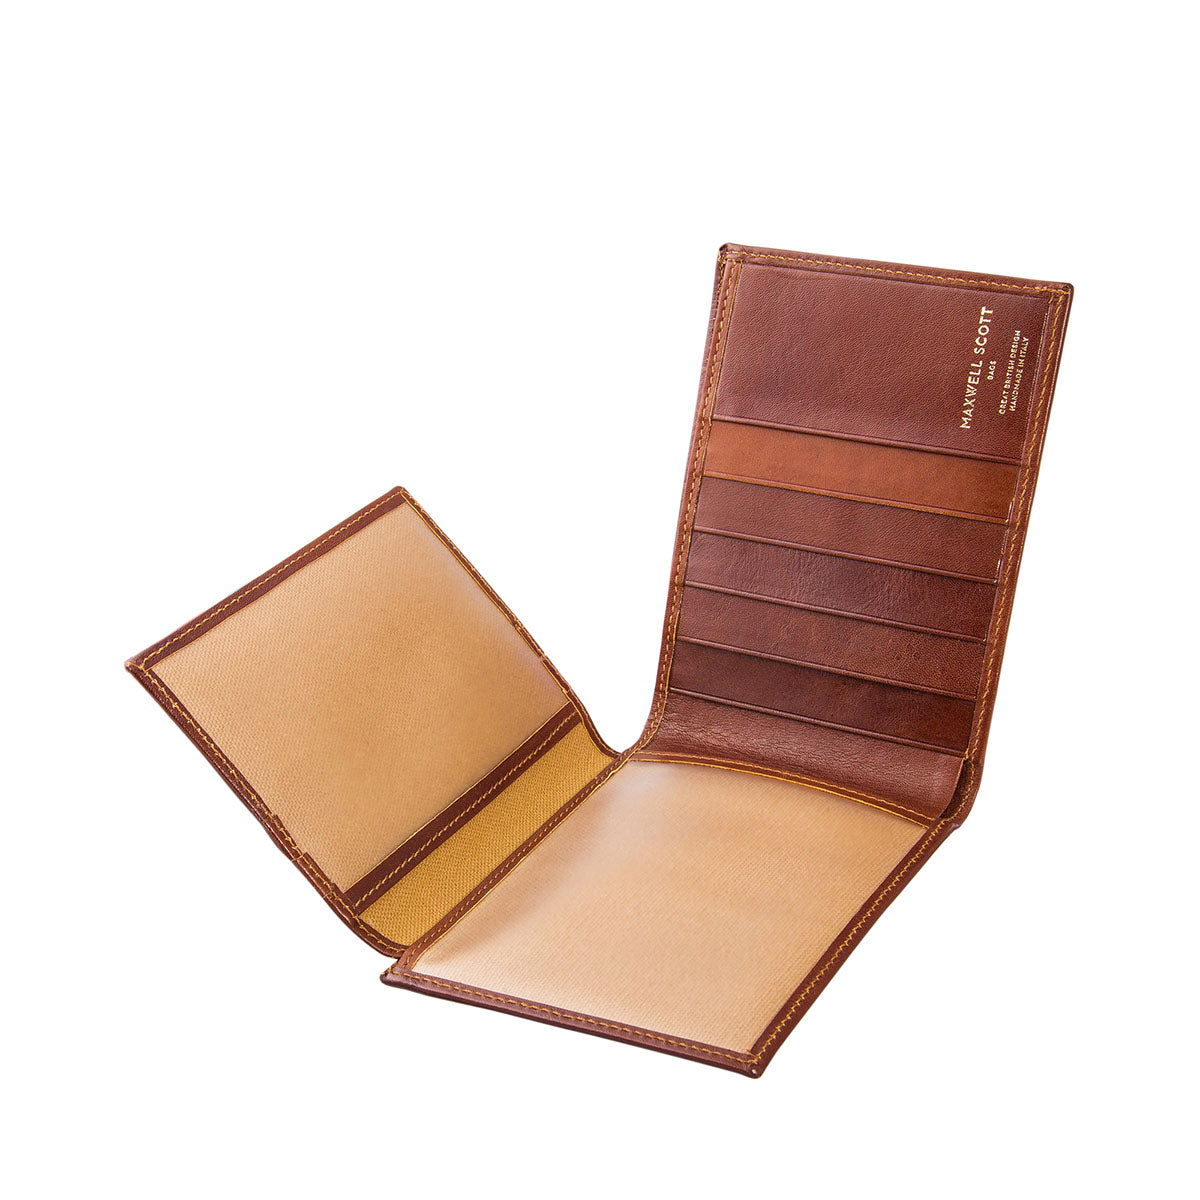 Image 3 of the 'Gallucio' Chestnut Veg-Tanned Leather Tri Fold Credit Card Wallet